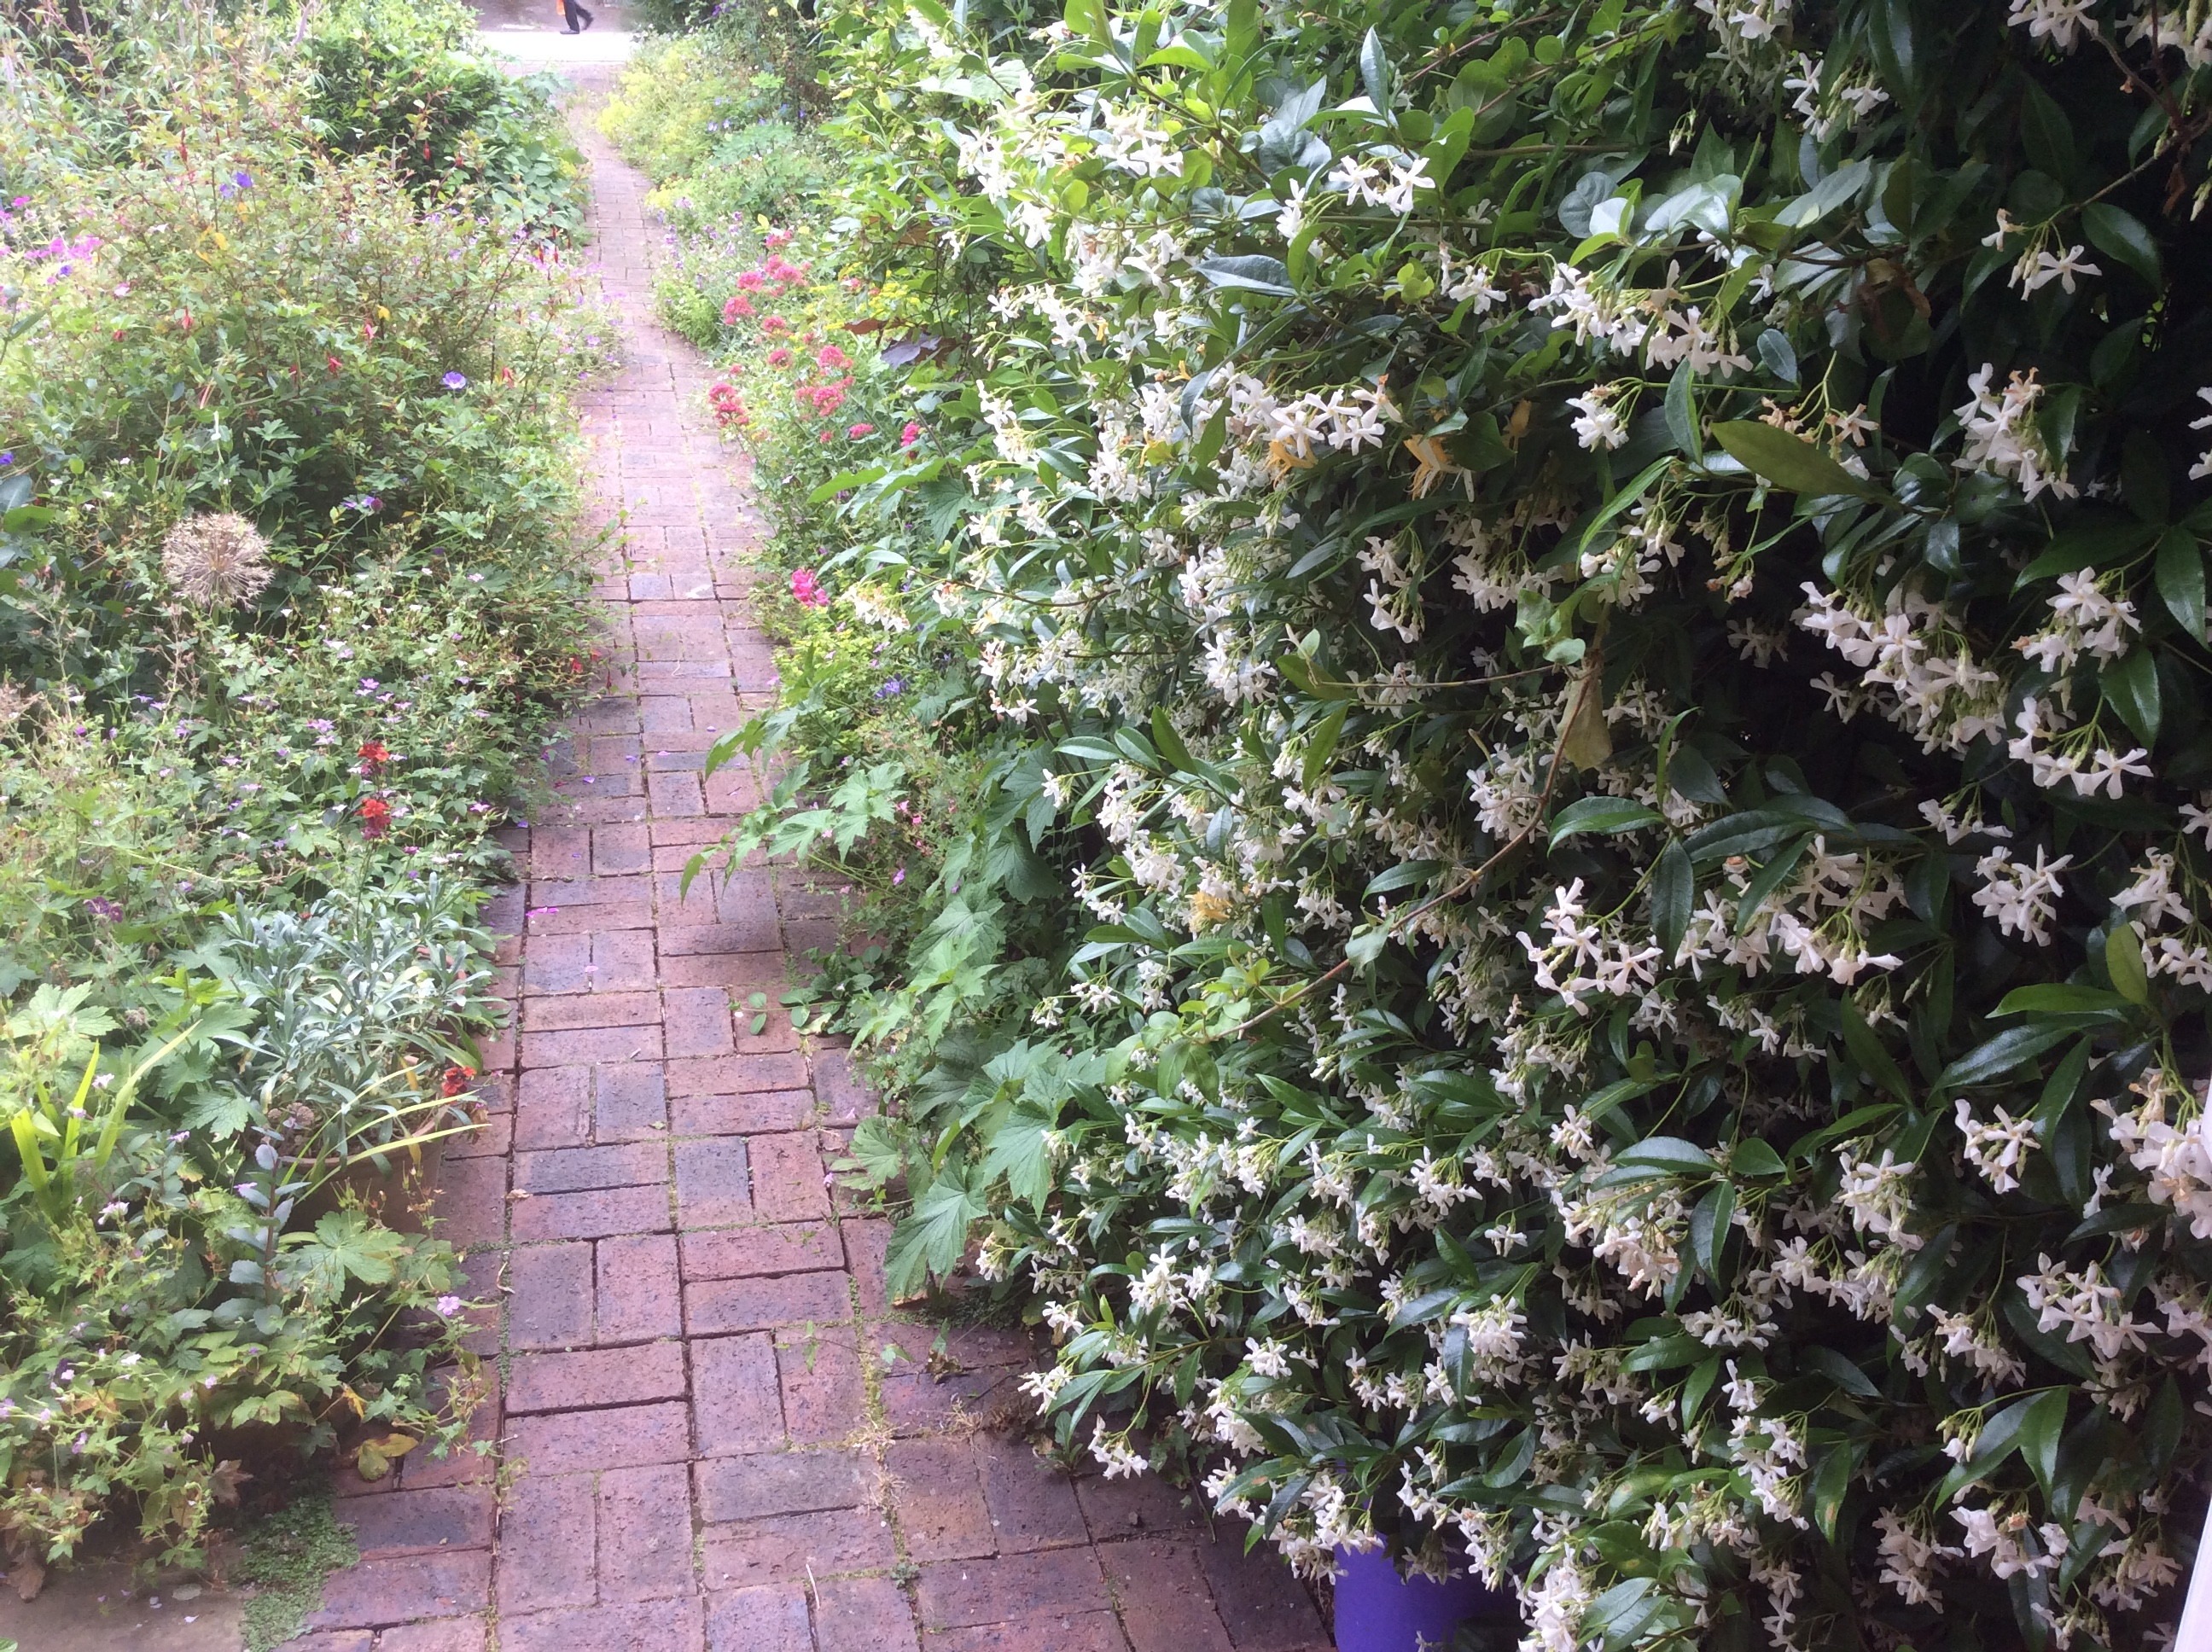 jasmine flowers in early July in my cottage garden